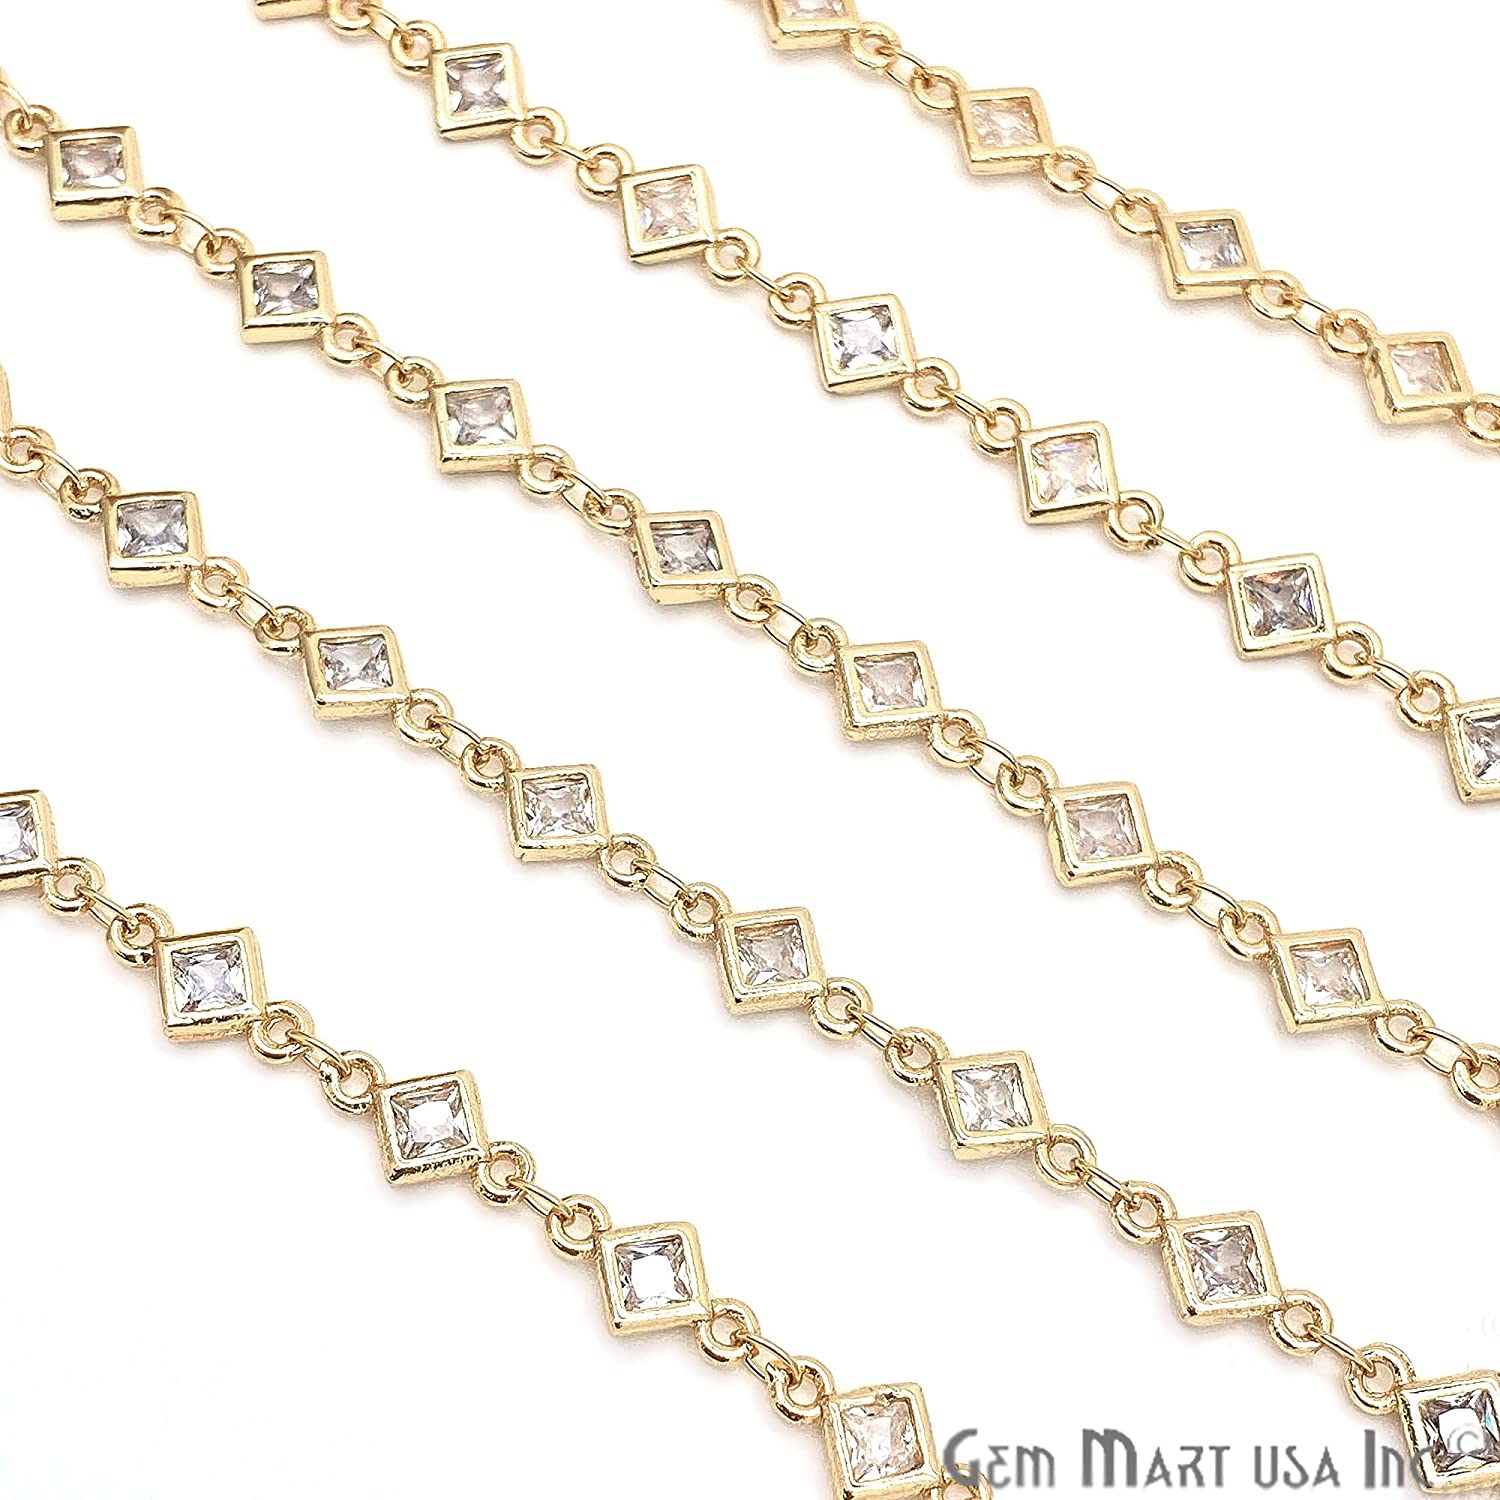 White Cubic Zirconia Chain, Continuous Chain Connector Chain, Gold Plated Chain, Rhombus Shaped Connector, Gold Cubic Zirconia Chain (GPCZ-30003)